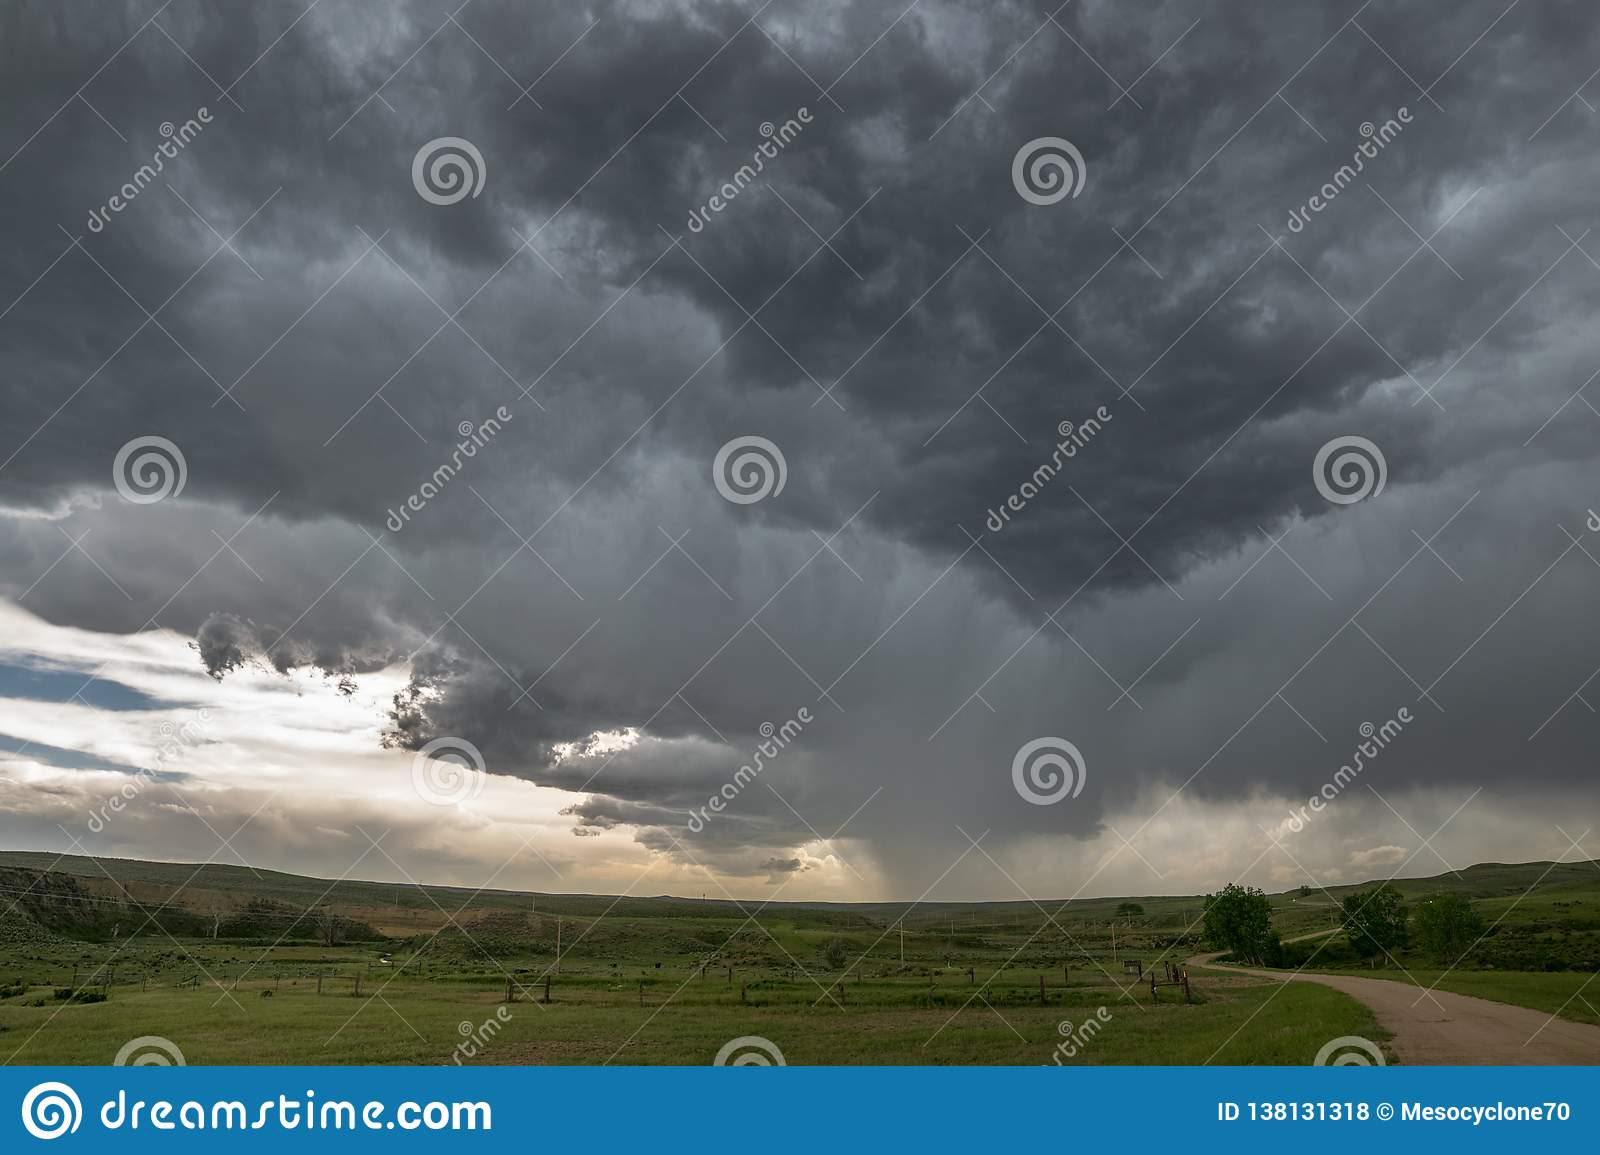 A rotating thunderstorm, also known as a supercell, over the grasslands of northeastern Wyoming